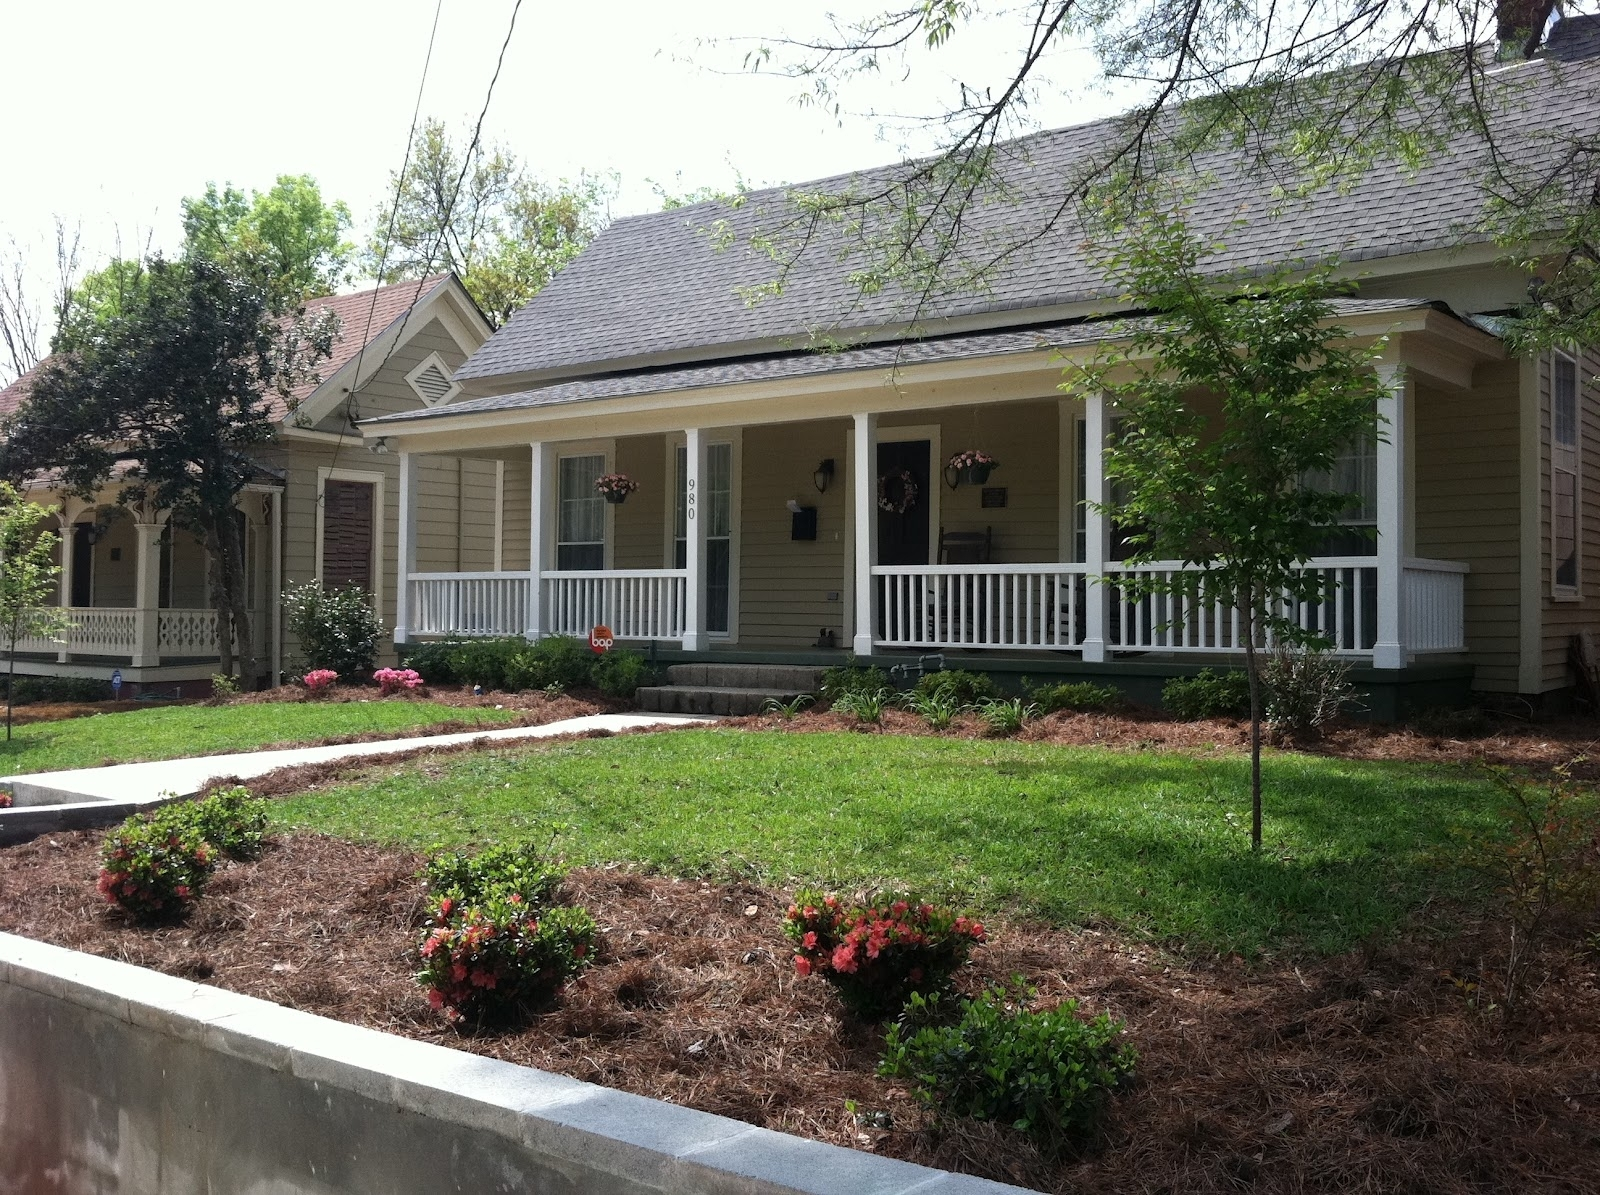 Download Landscaping Ideas For Small Front Yard In Front Of House Inside Small Front Yard Landscaping The Best Small Front Yard Landscaping Idea